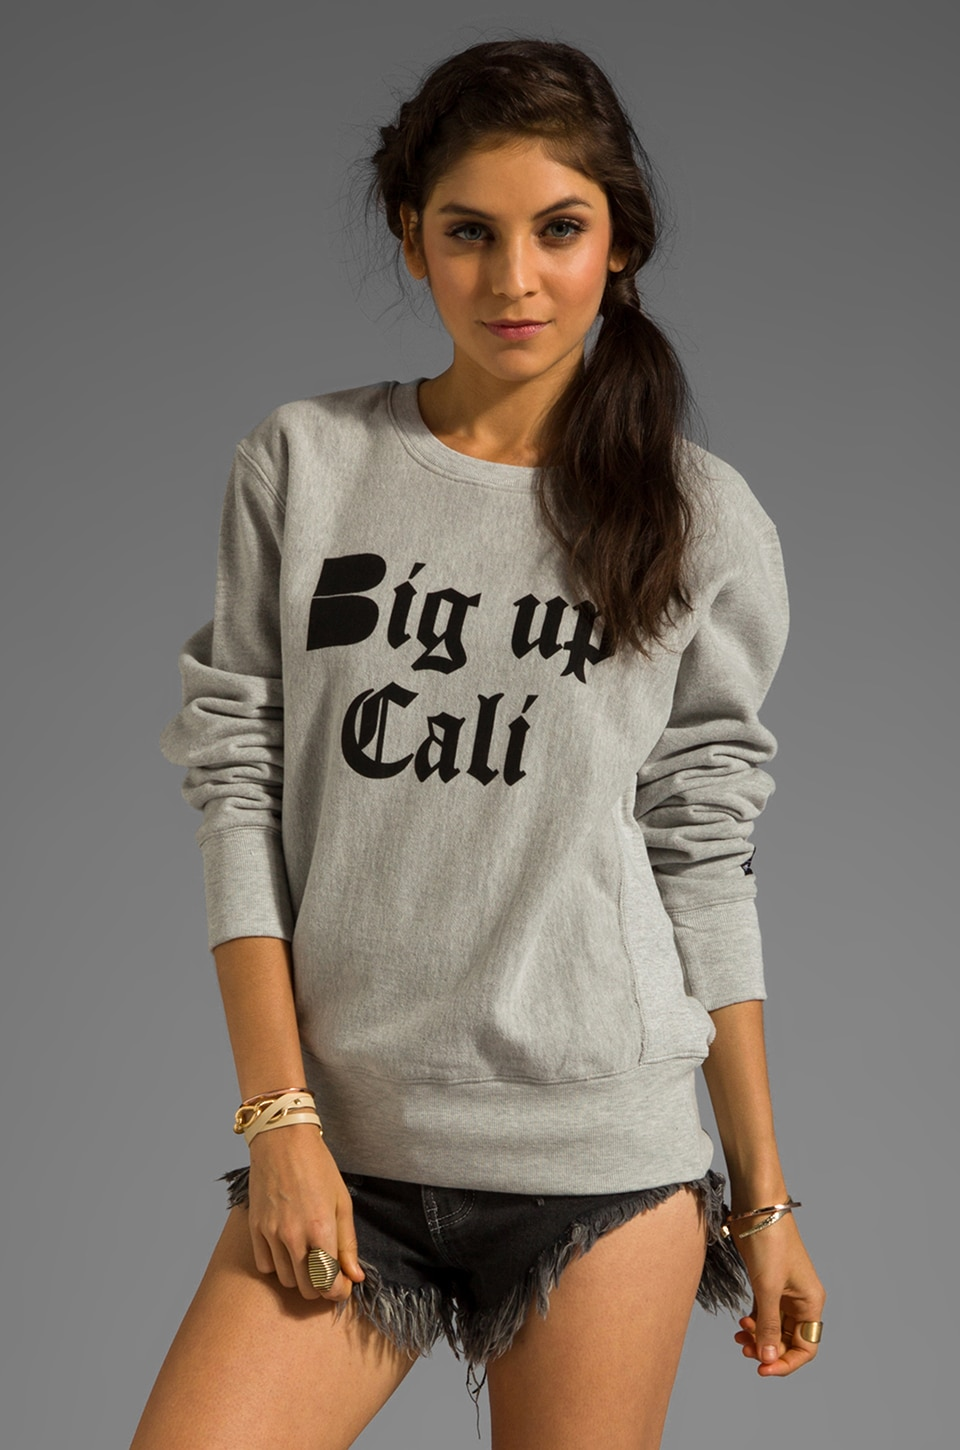 B-side by Wale Big Up Cali Sweatshirt in Heather Grey/Black